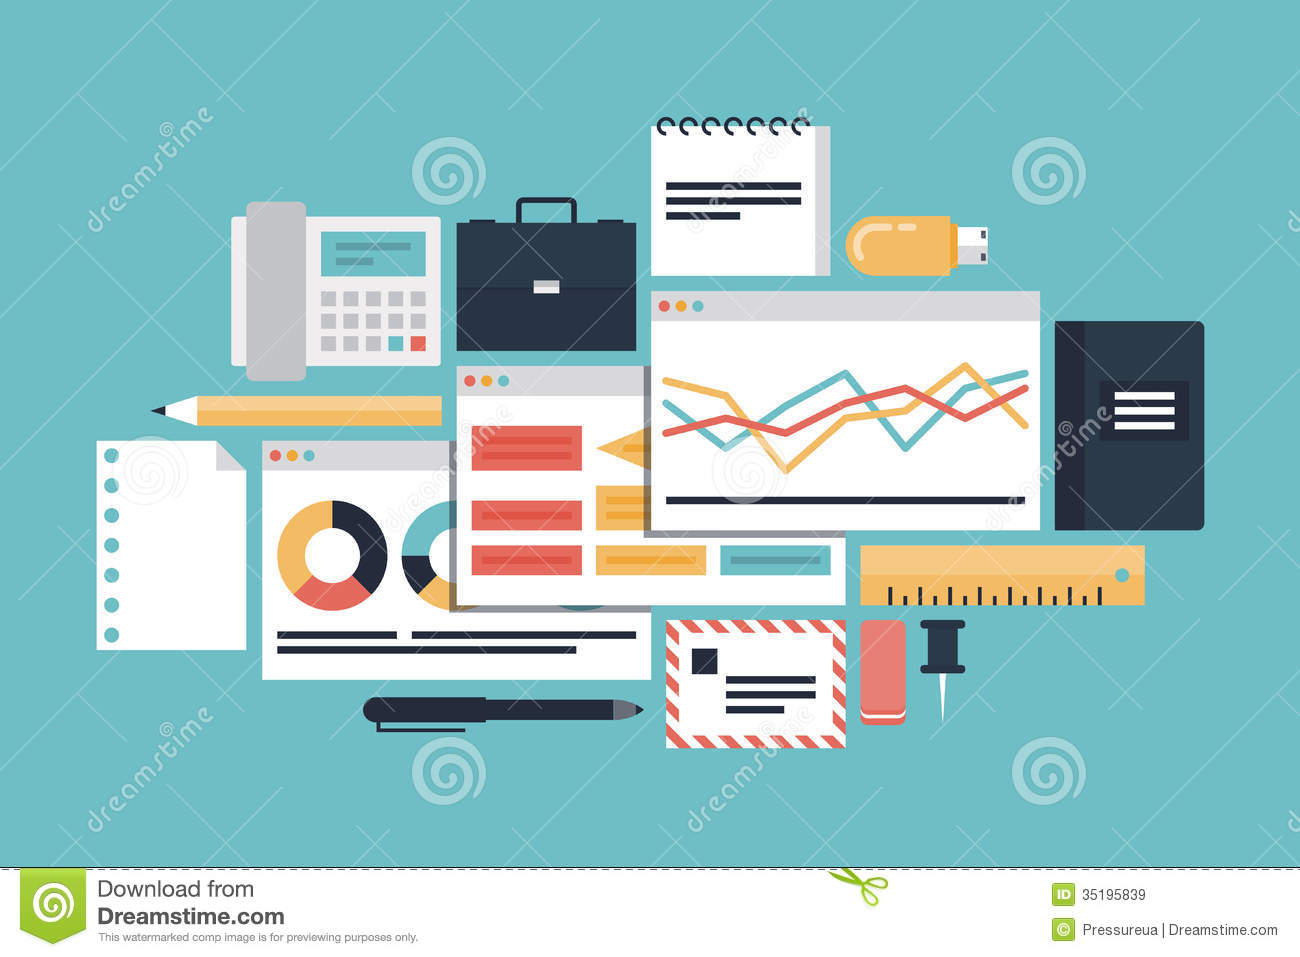 Business Productivity Illustration Concept Royalty Free